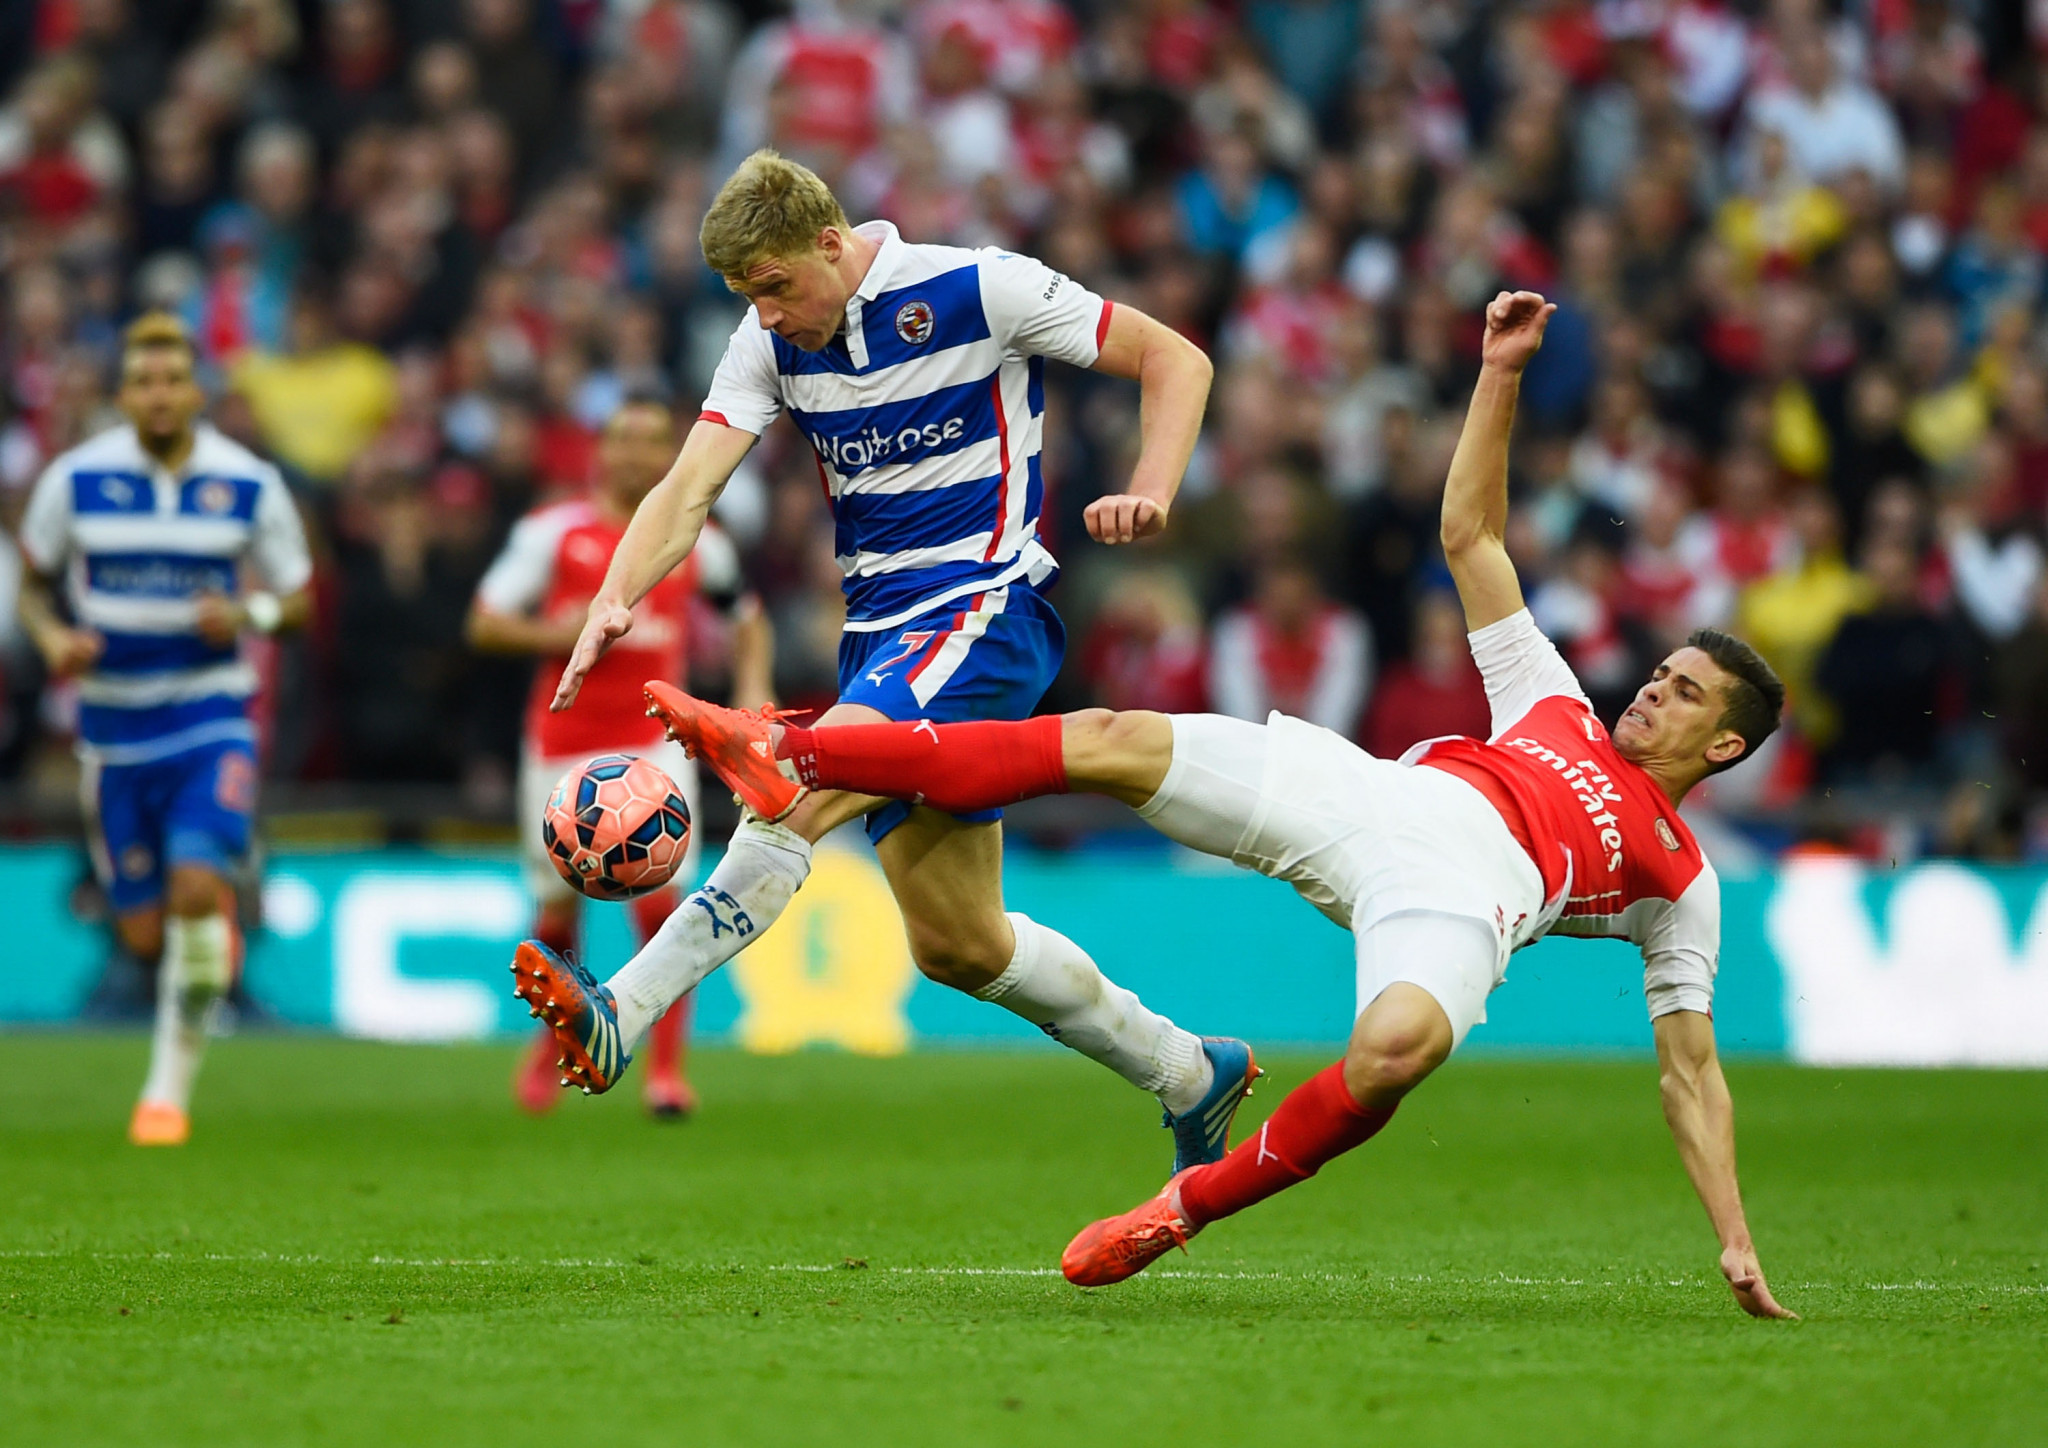 Russia's Pavel Pogrebnyak has played for a number of teams, including Reading in the English Premier League ©Getty Images